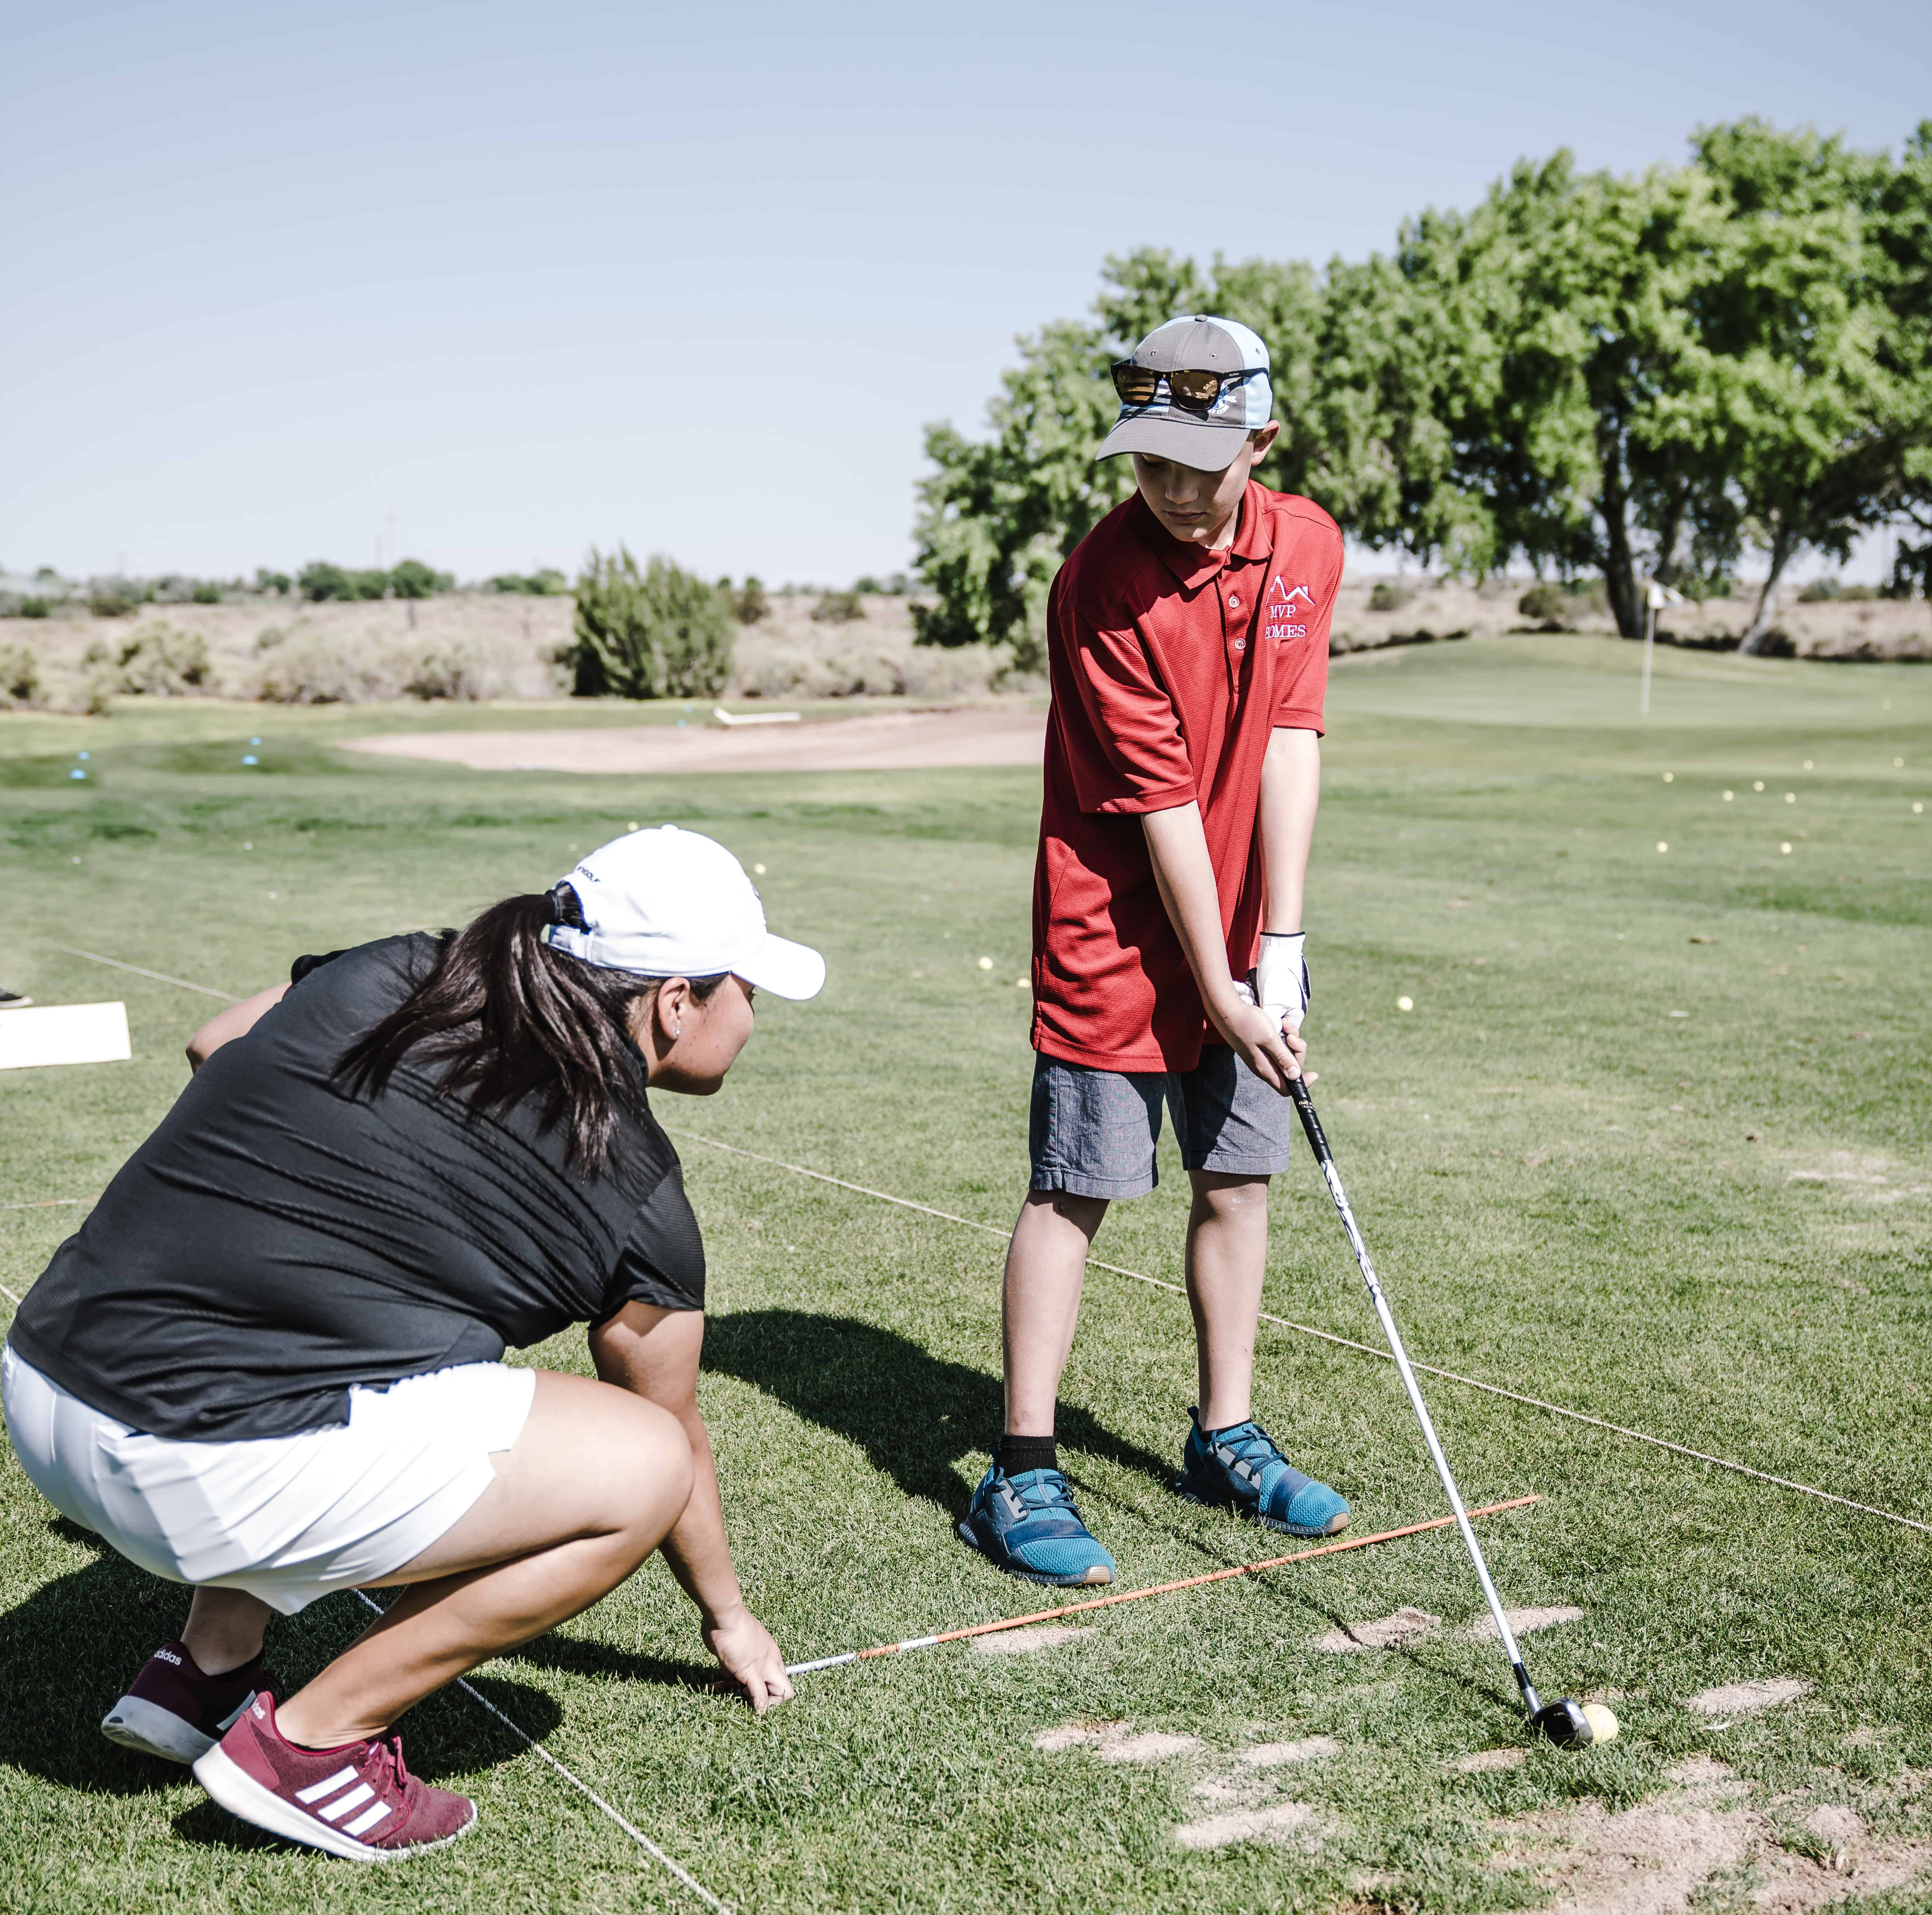 boy holding golf club in front of a crouchin woman to illustrate mind management